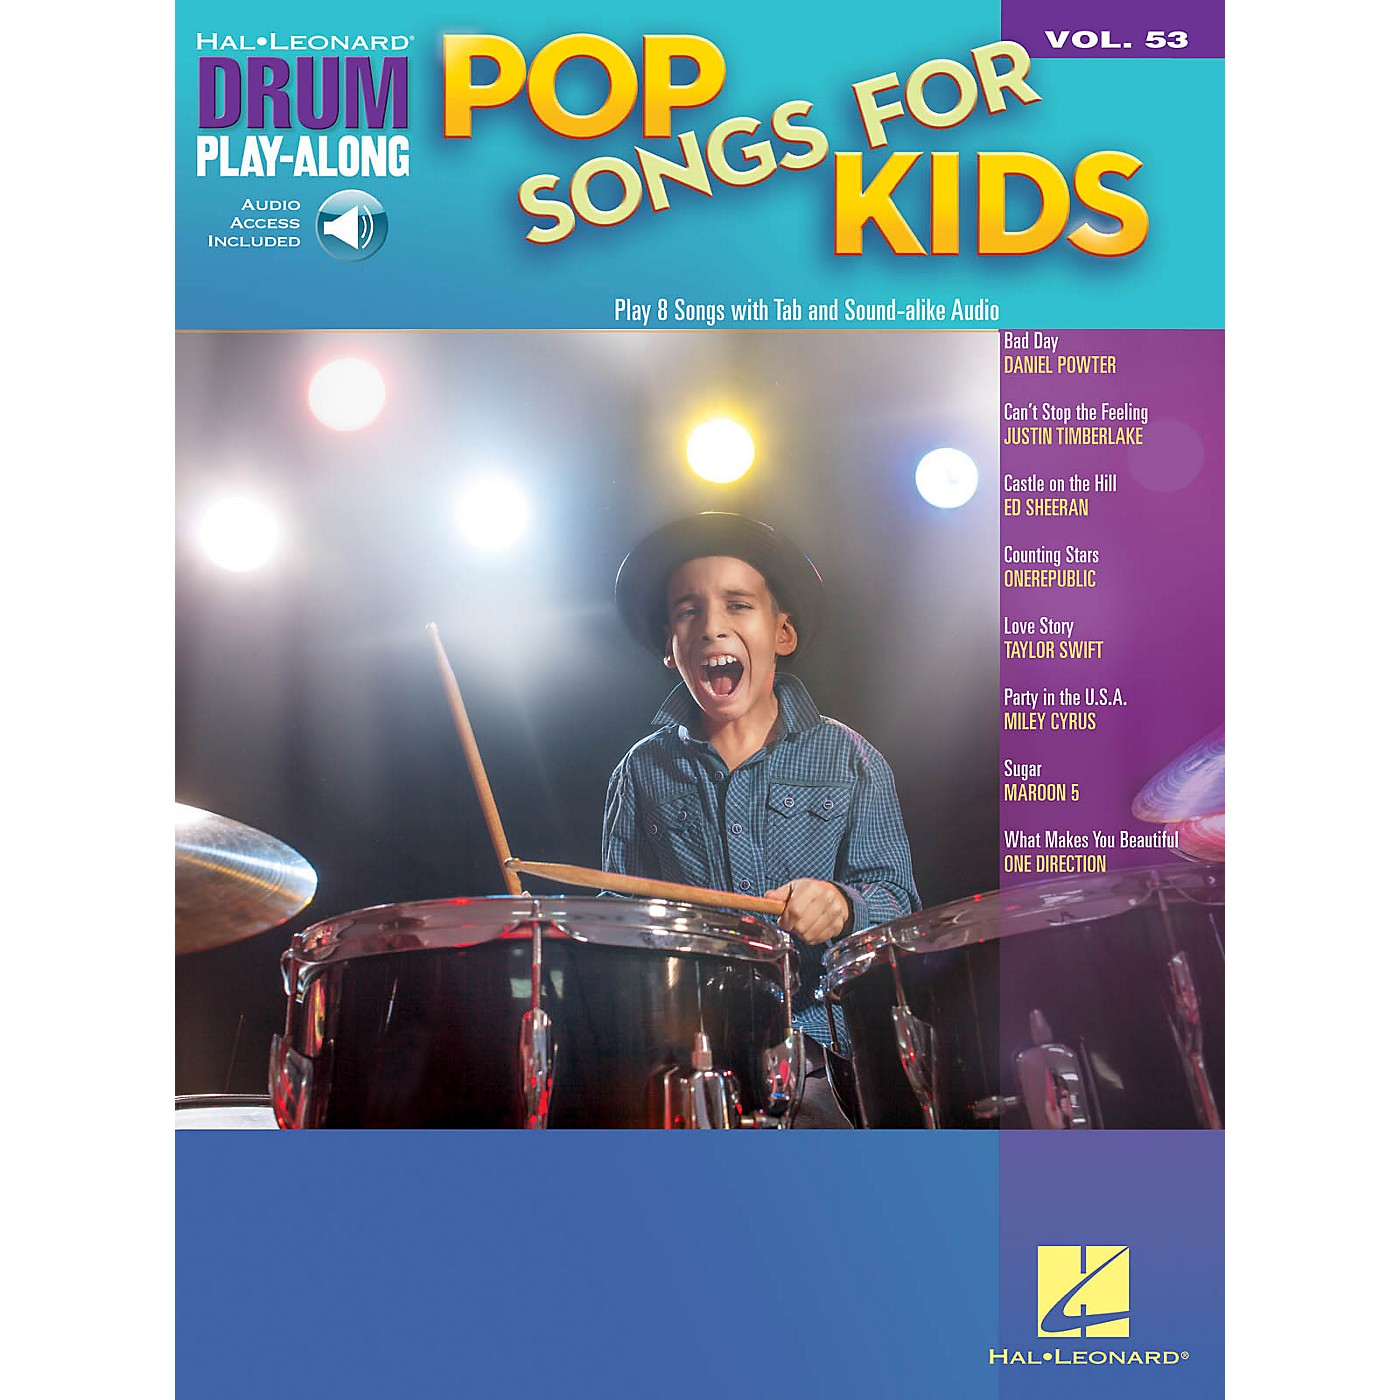 Hal Leonard Pop Songs for Kids Drum Play-Along Volume 53 Book/Audio Online thumbnail